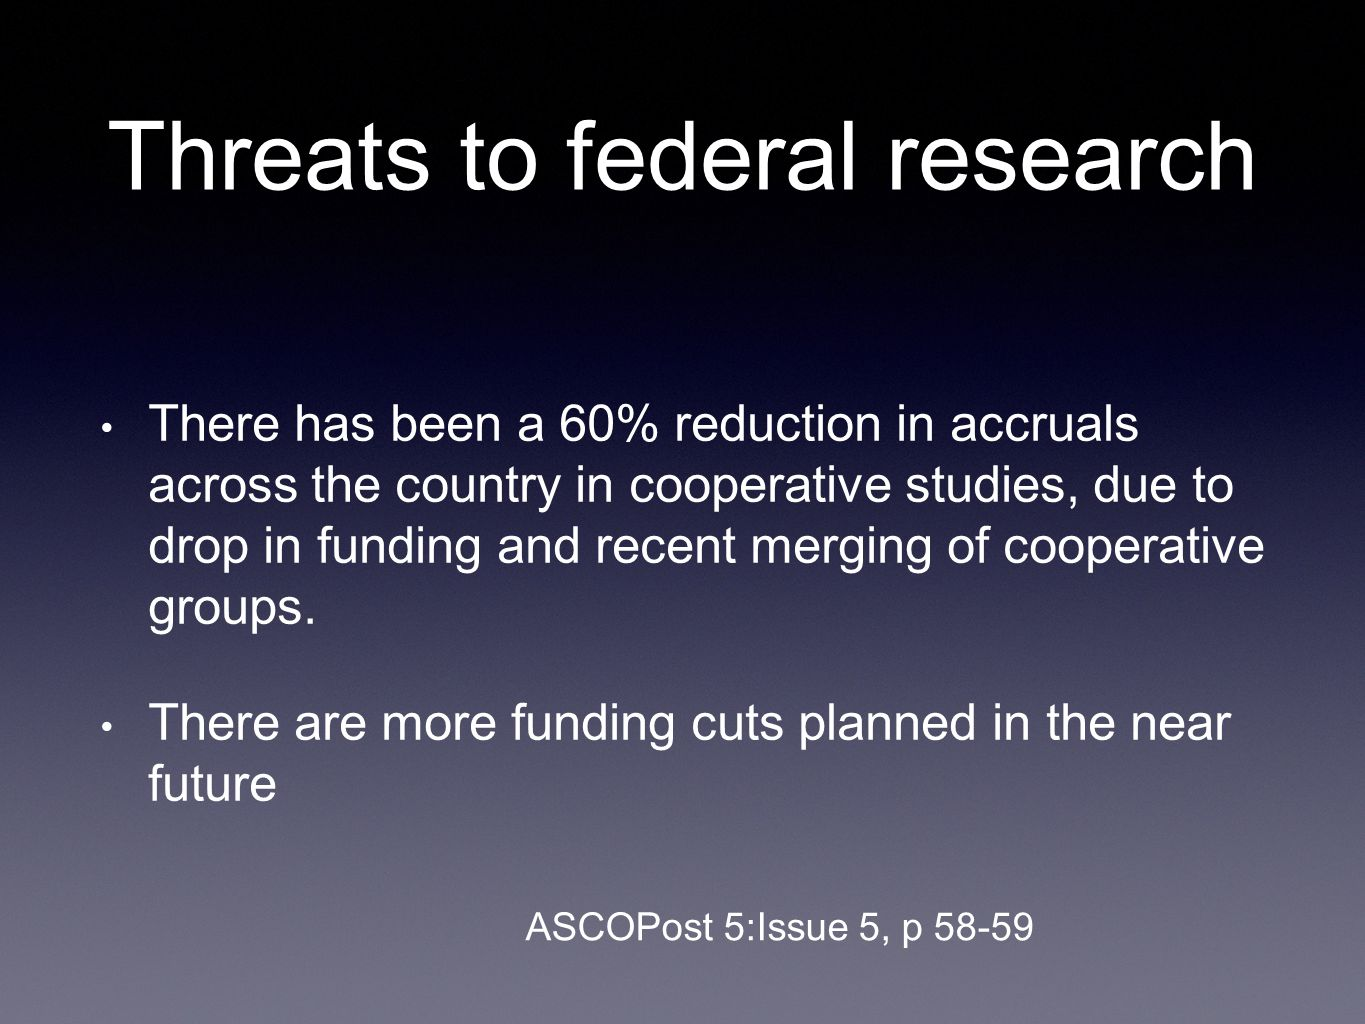 Threats to federal research There has been a 60% reduction in accruals across the country in cooperative studies, due to drop in funding and recent merging of cooperative groups.